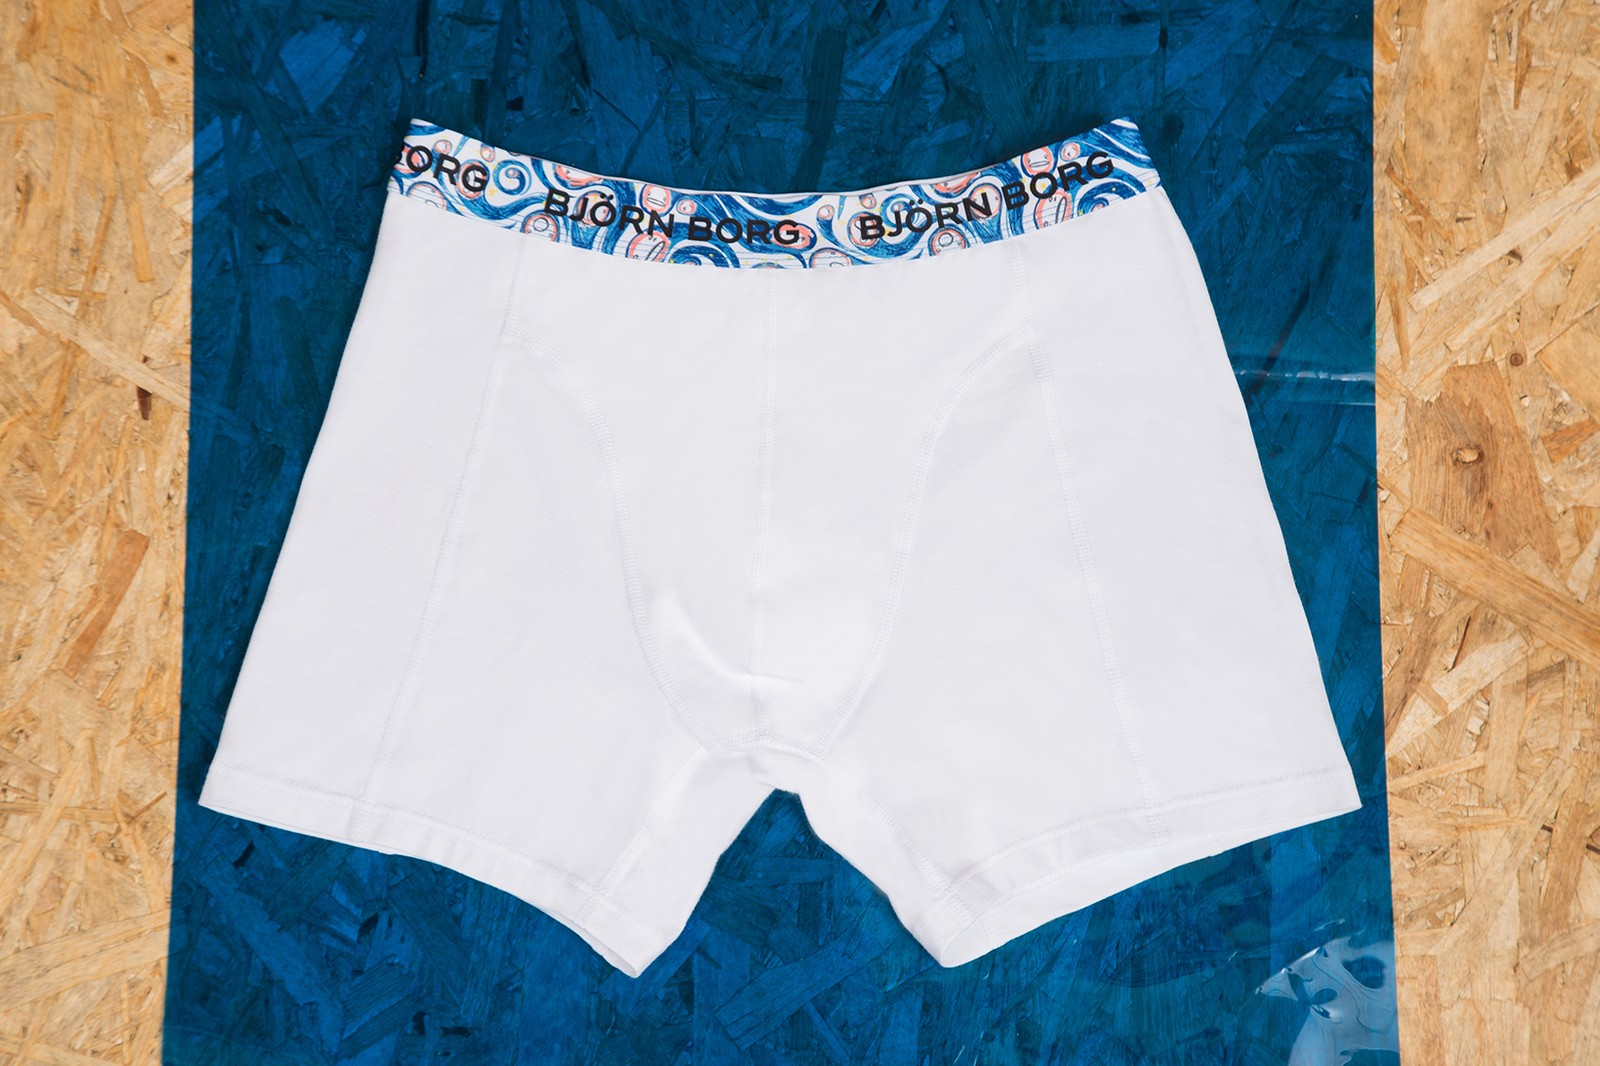 Charles Jeffery LOVERBOY x Björn Borg Underwear Collaboration Collection Sperm Scream Squiggle